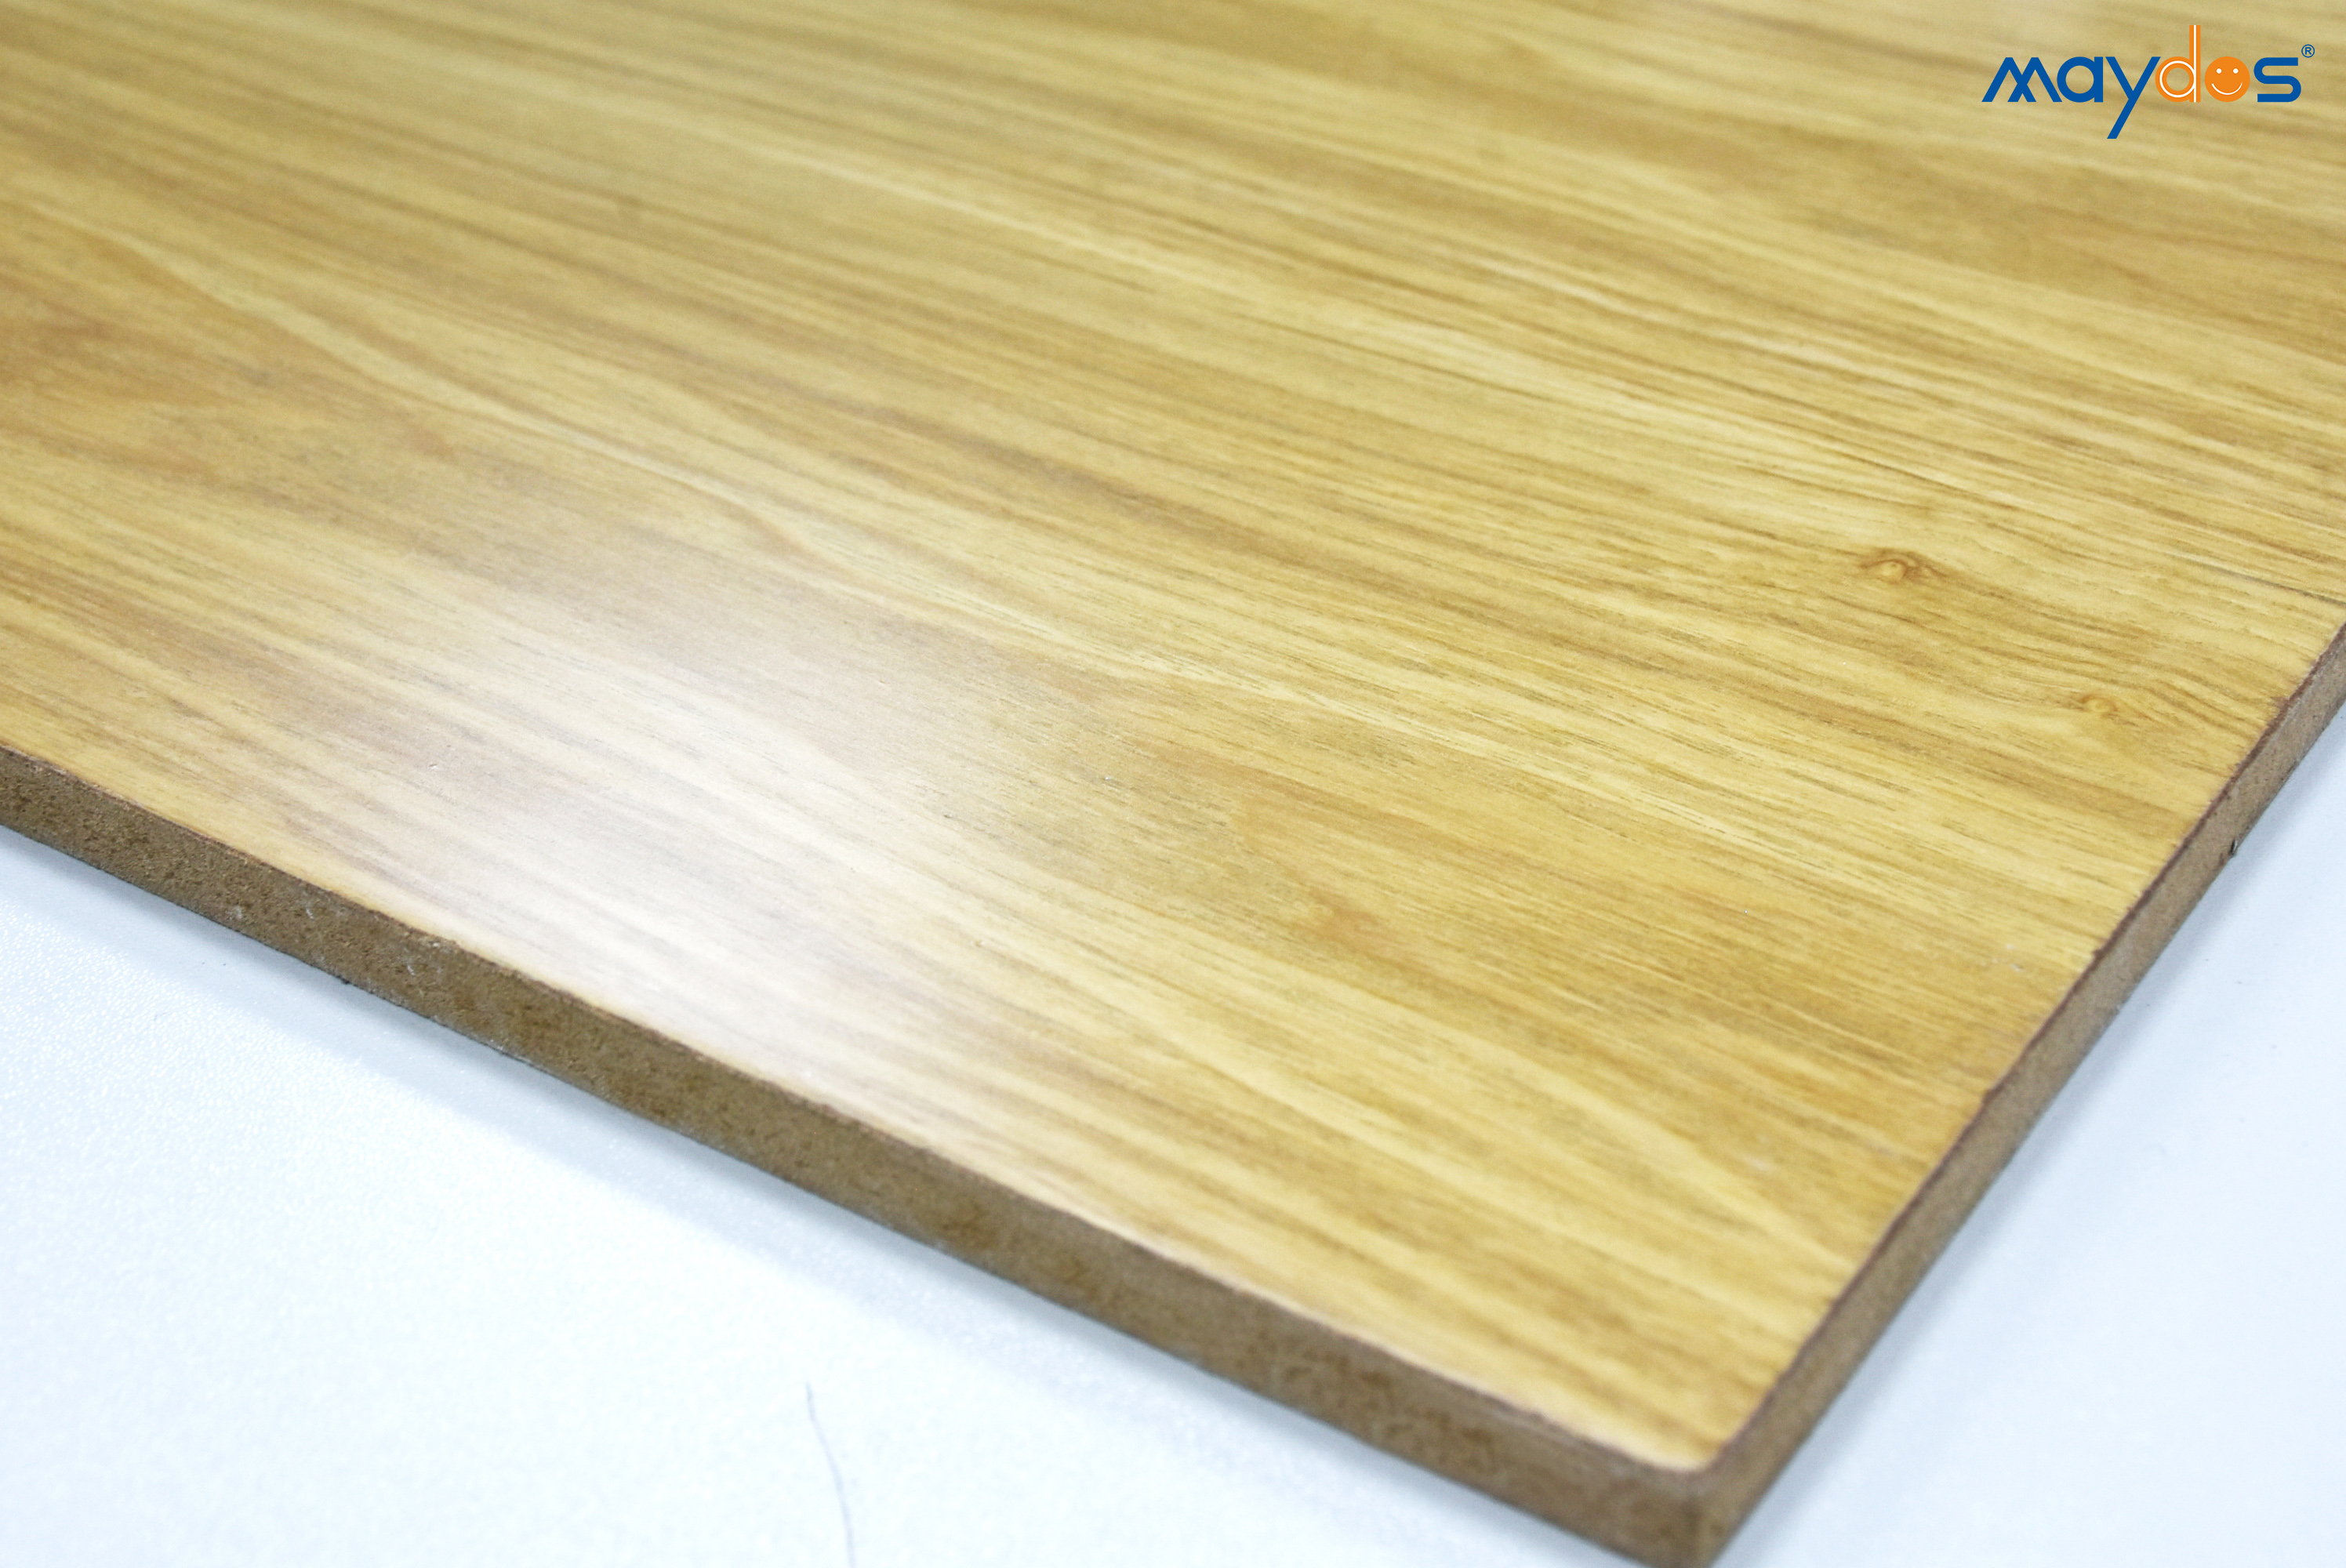 UV curing coating wood paint